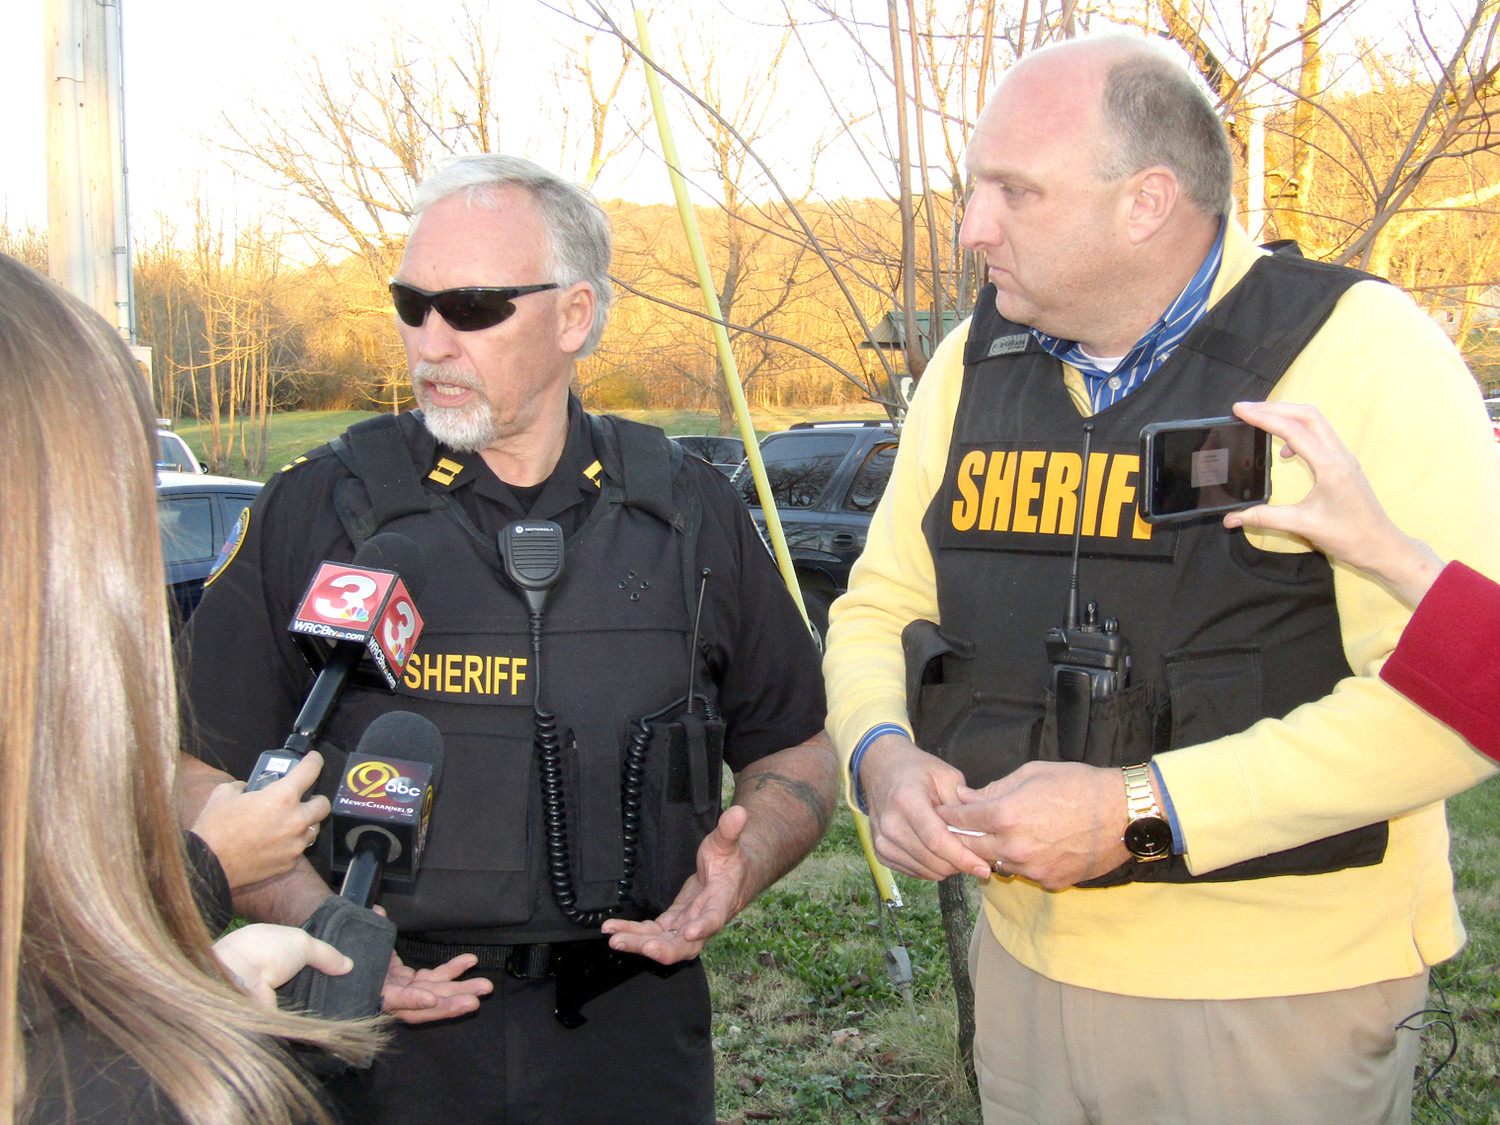 BCSO CAPT. Dennis Goins with the SWAT team and Sheriff Eric Watson brief members of the news media shortly after a hostage situation ended.